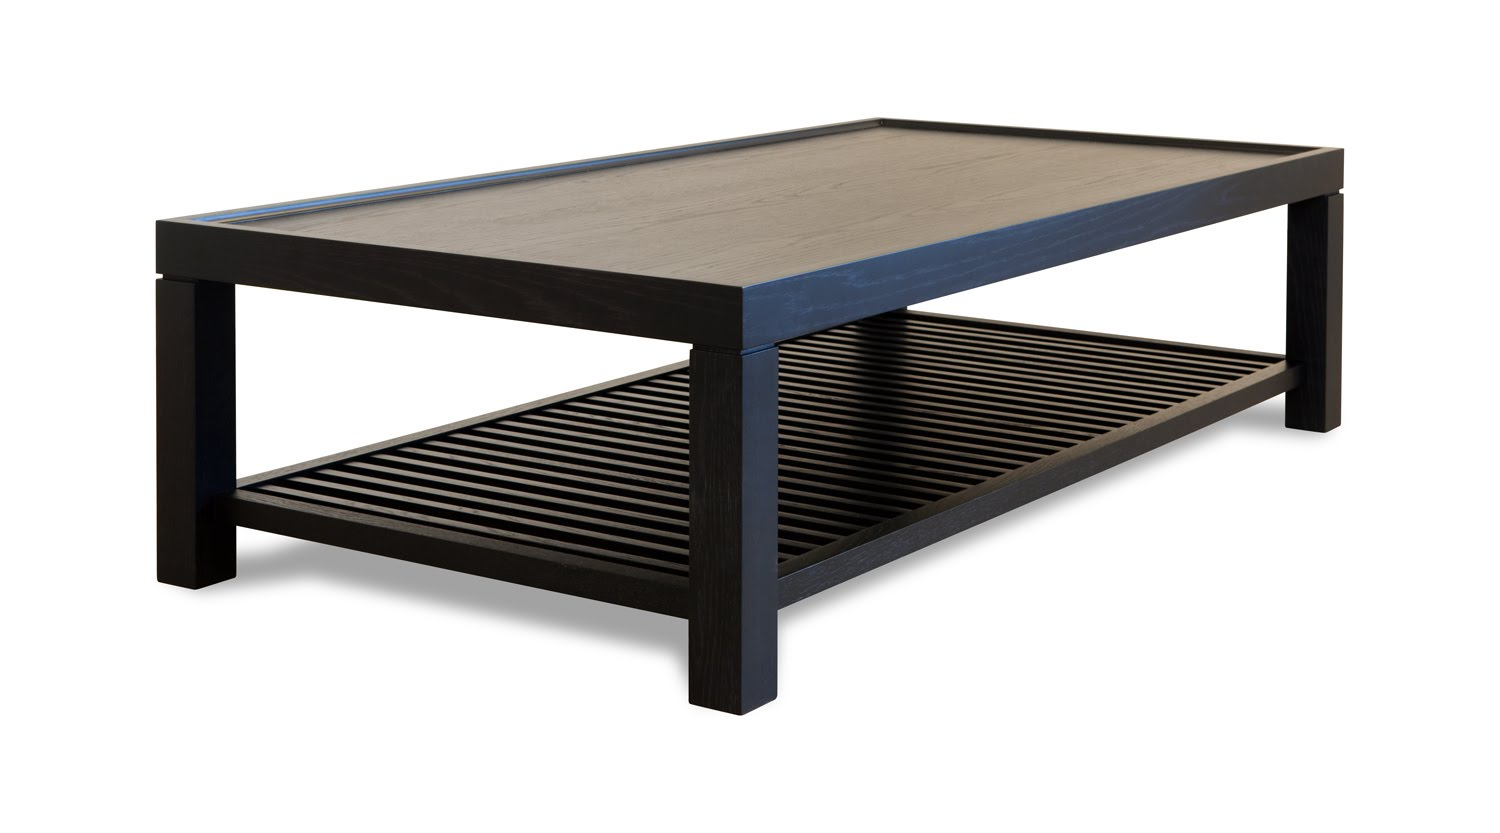 Hepburn Coffee Table From Antipodes Design Interior Moments